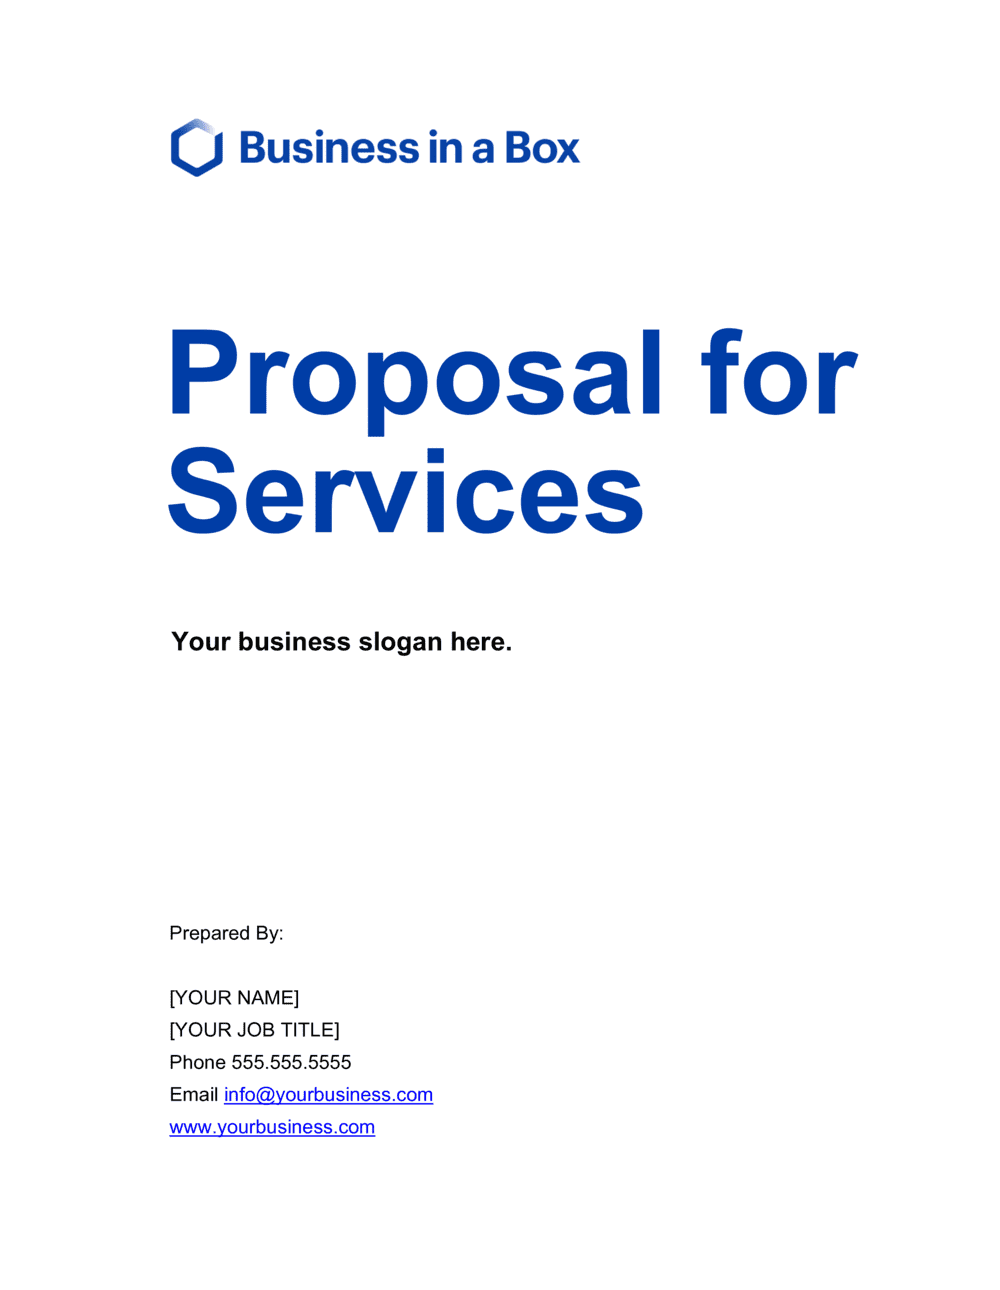 Business-in-a-Box's Proposal for Services Template